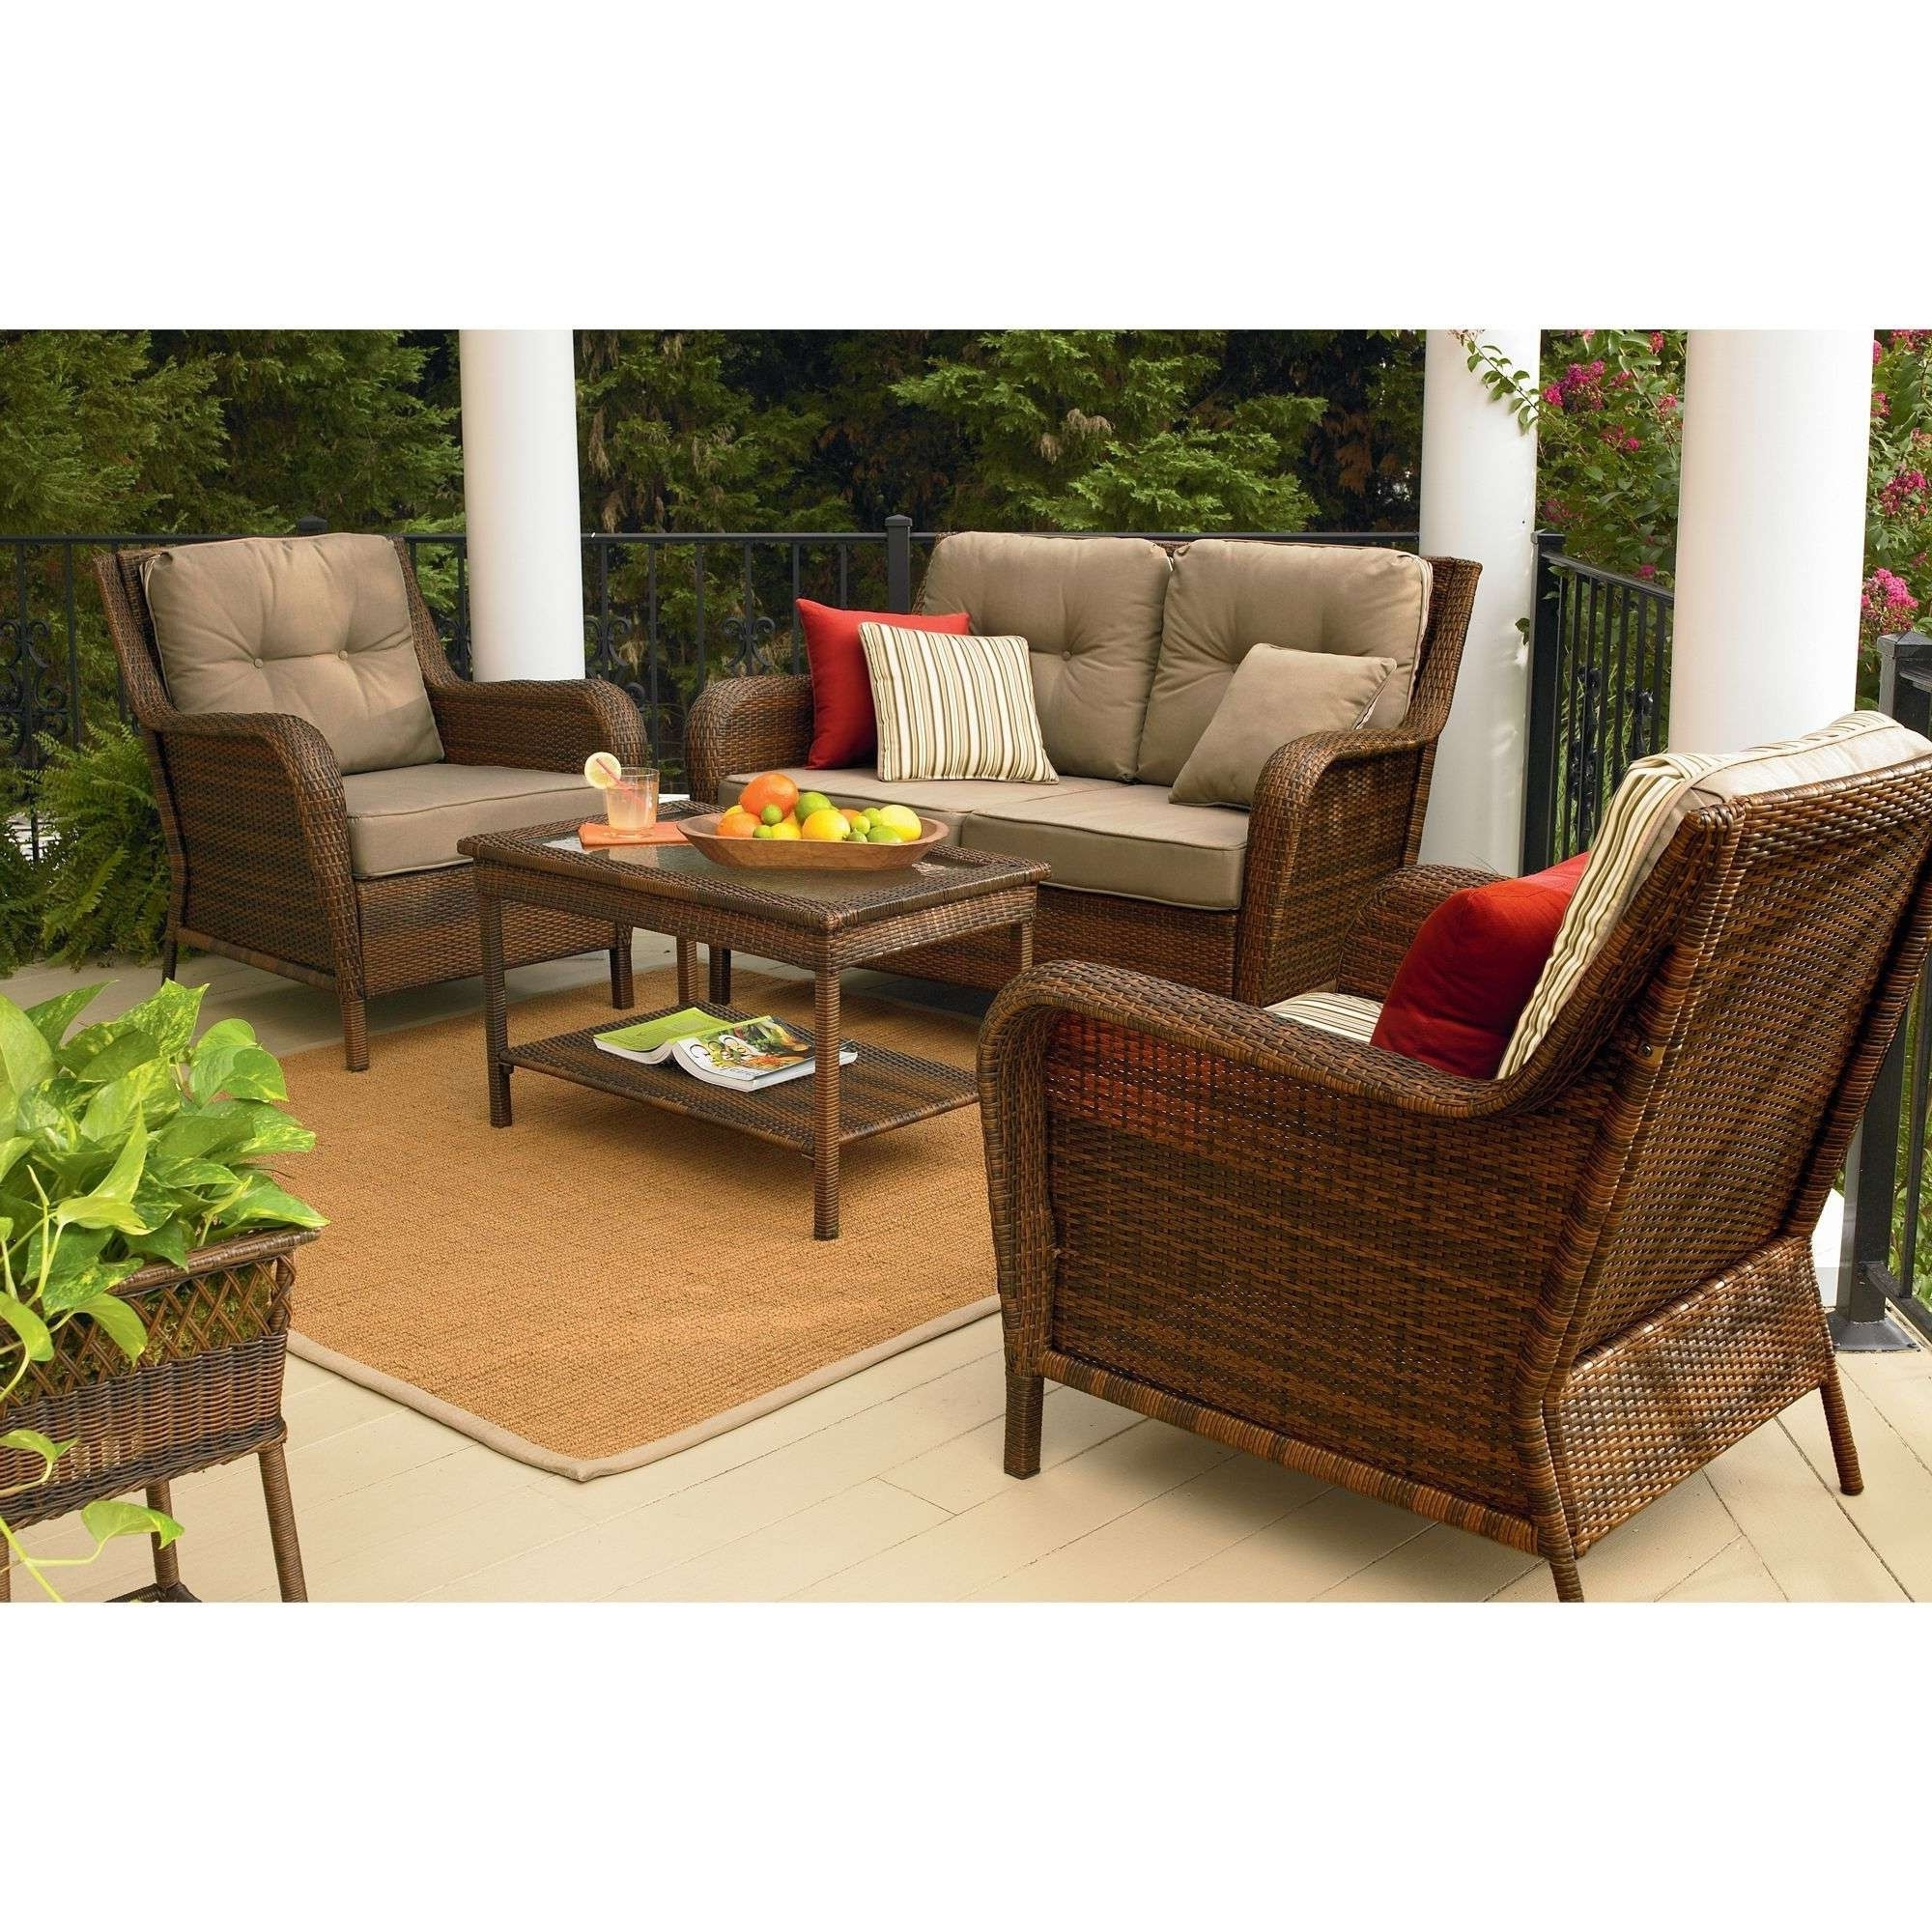 Patio Conversation Sets At Sears With Fashionable Sears Patio Furniture Comfortable Sears Wicker Furniture Sets Patio (View 13 of 20)